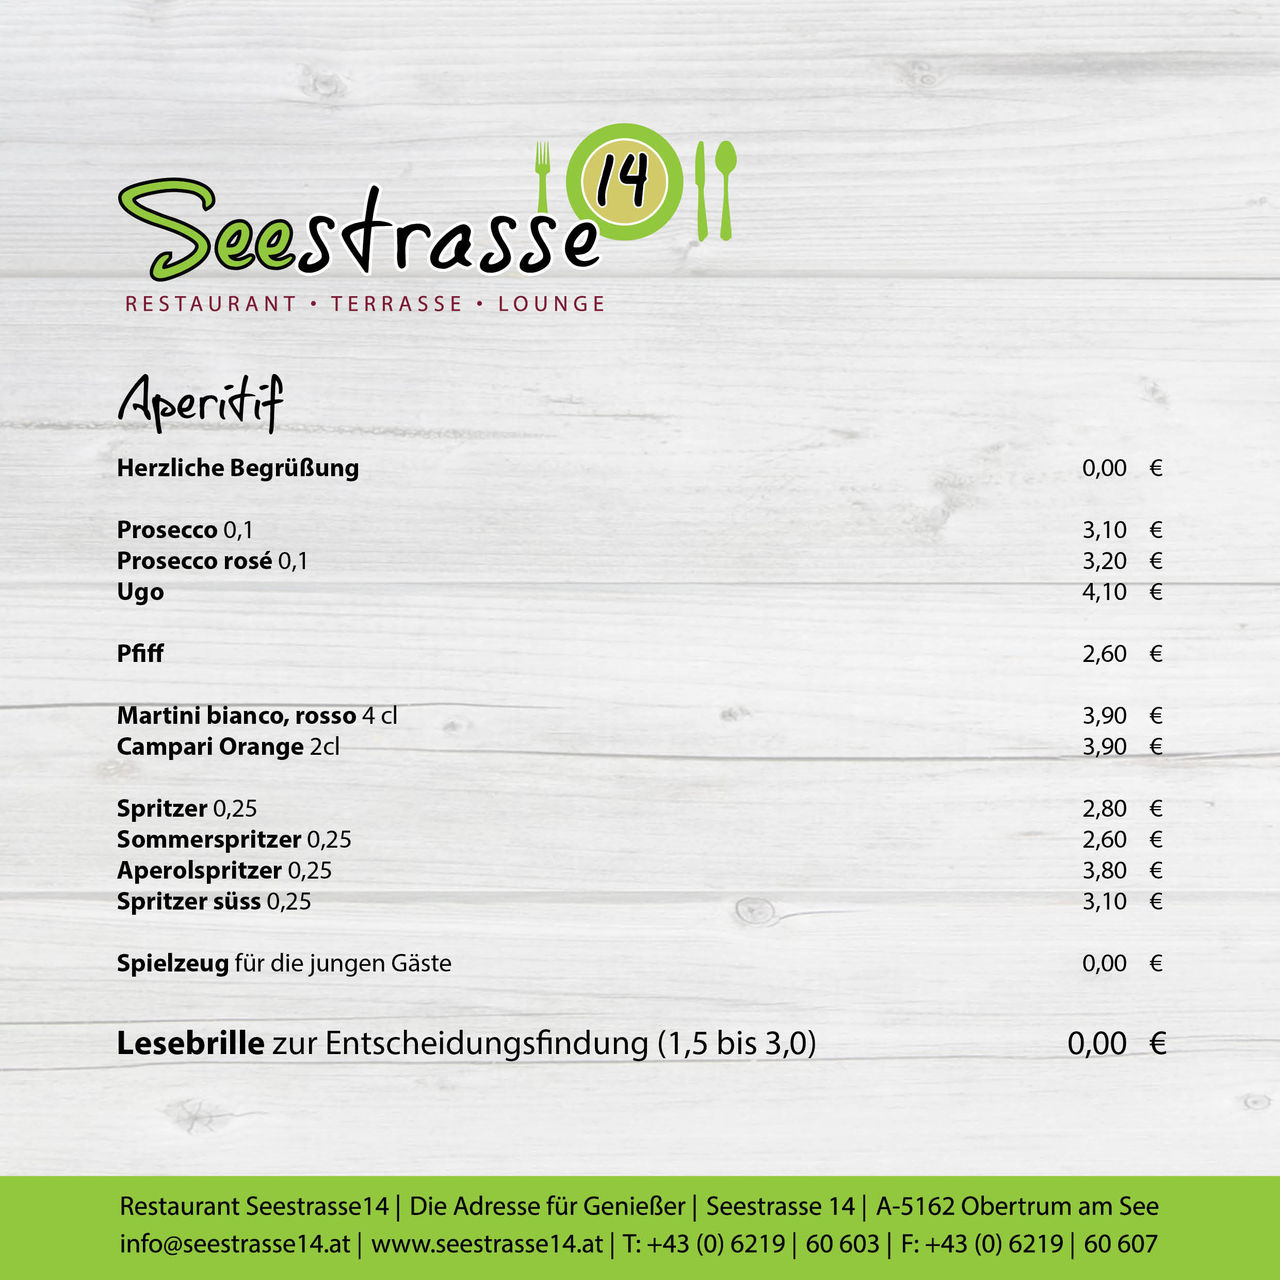 A photo of Seestrasse 14